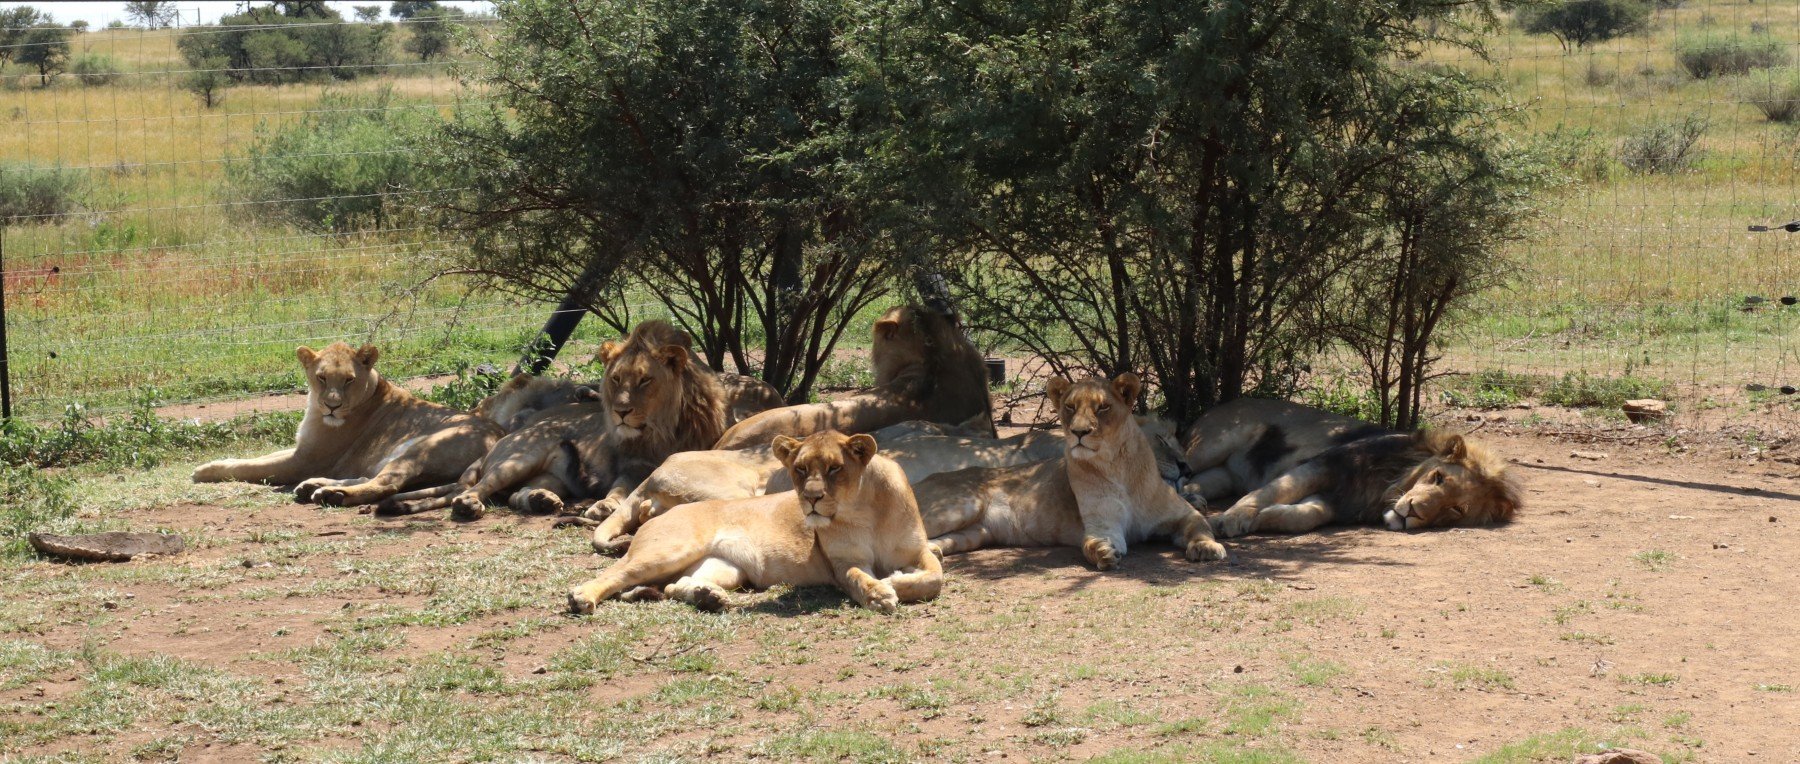 Lions at a venue in South Africa offering petting and interaction with big cats.